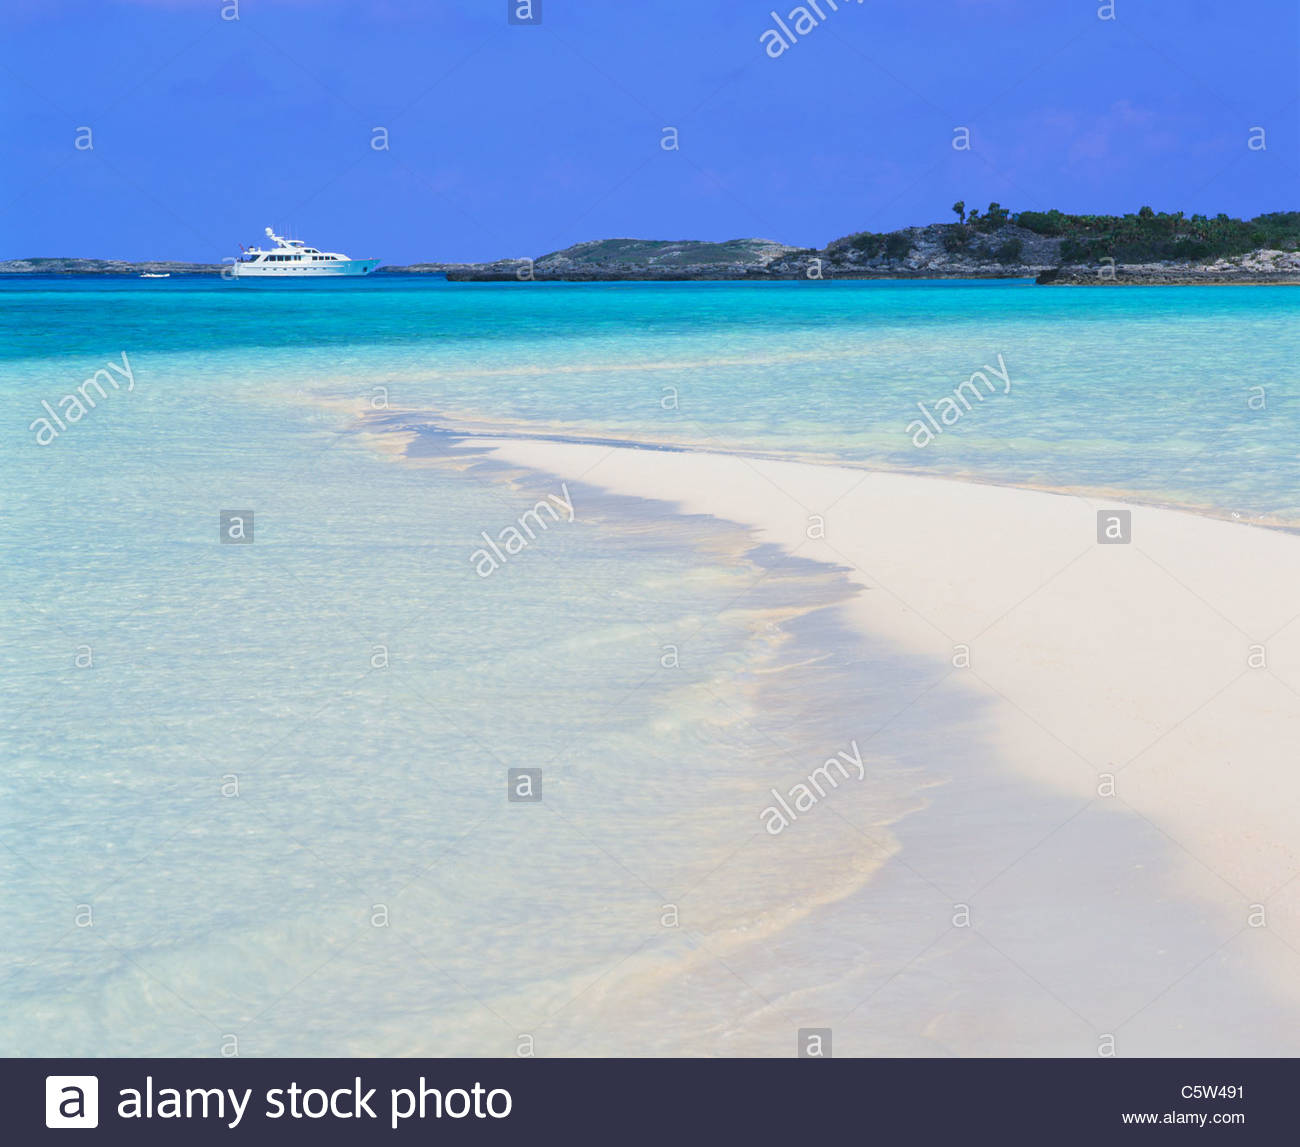 Motor yacht at northern harbor of Warderick Wells Cay with sand bar. Warderick Wells Land and Sea Park, Exuma Cays, - Stock Image